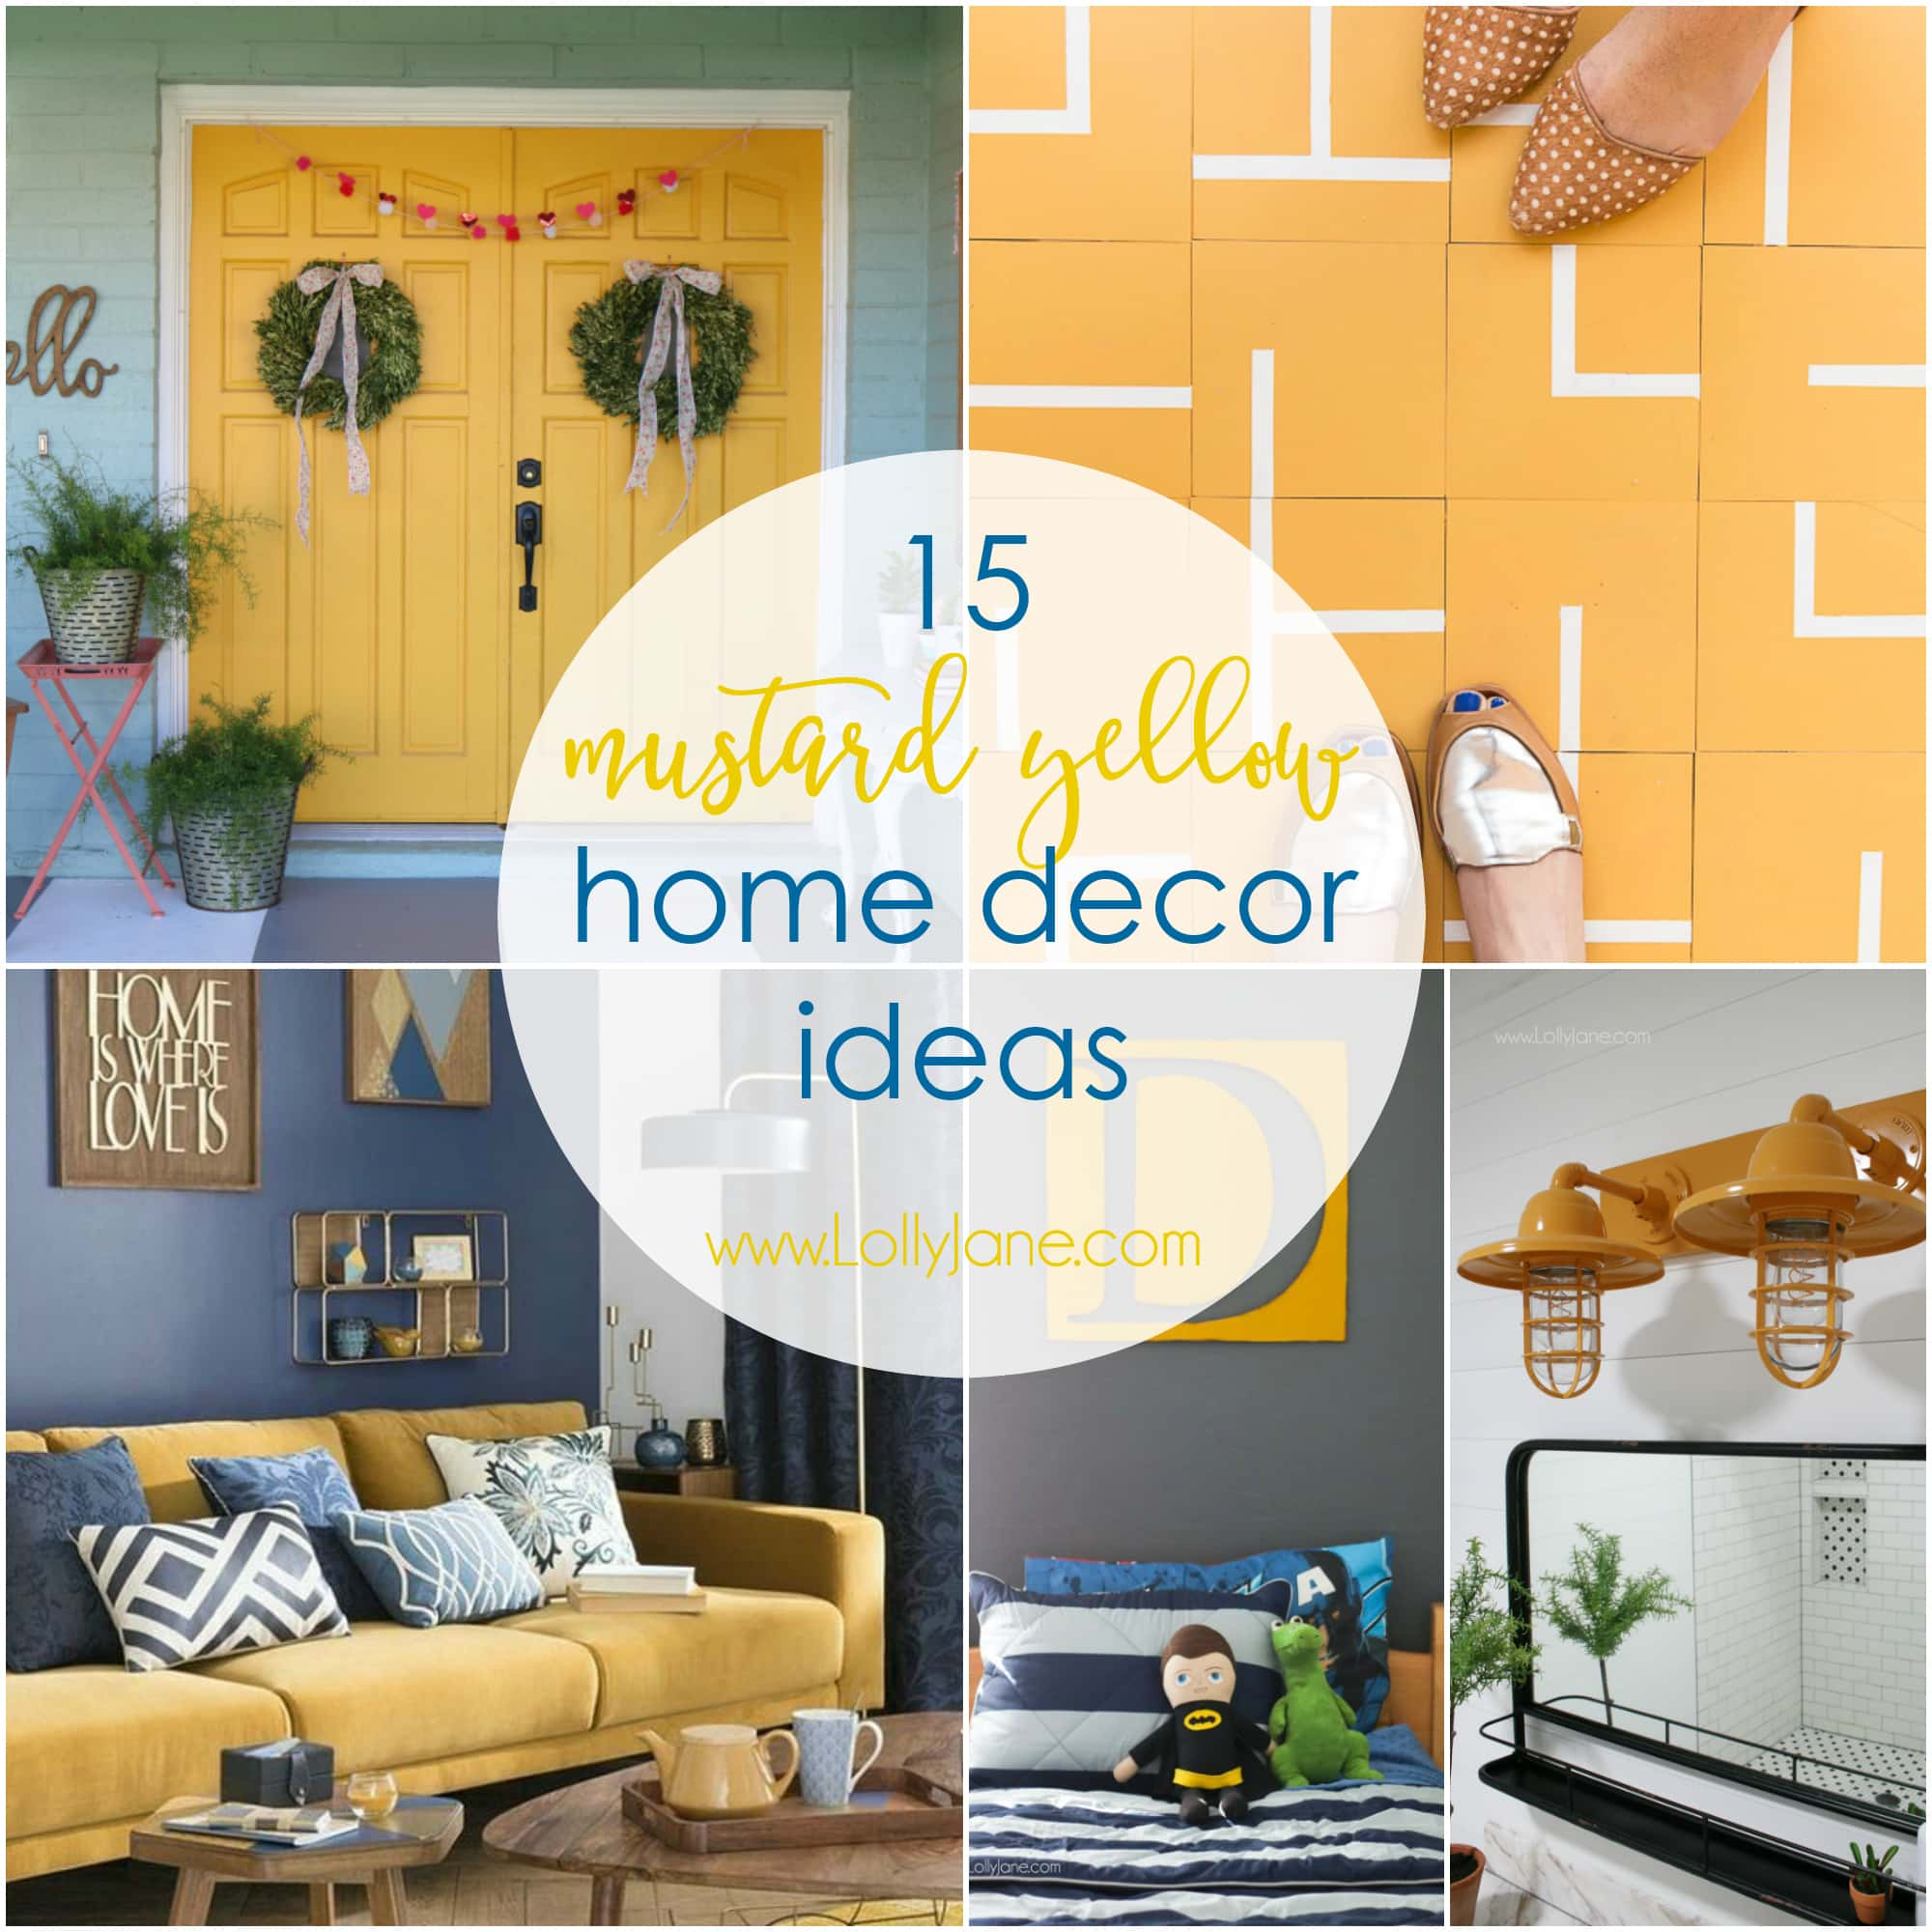 Home Design Ideas Youtube: 15 Mustard Yellow Home Decor Ideas